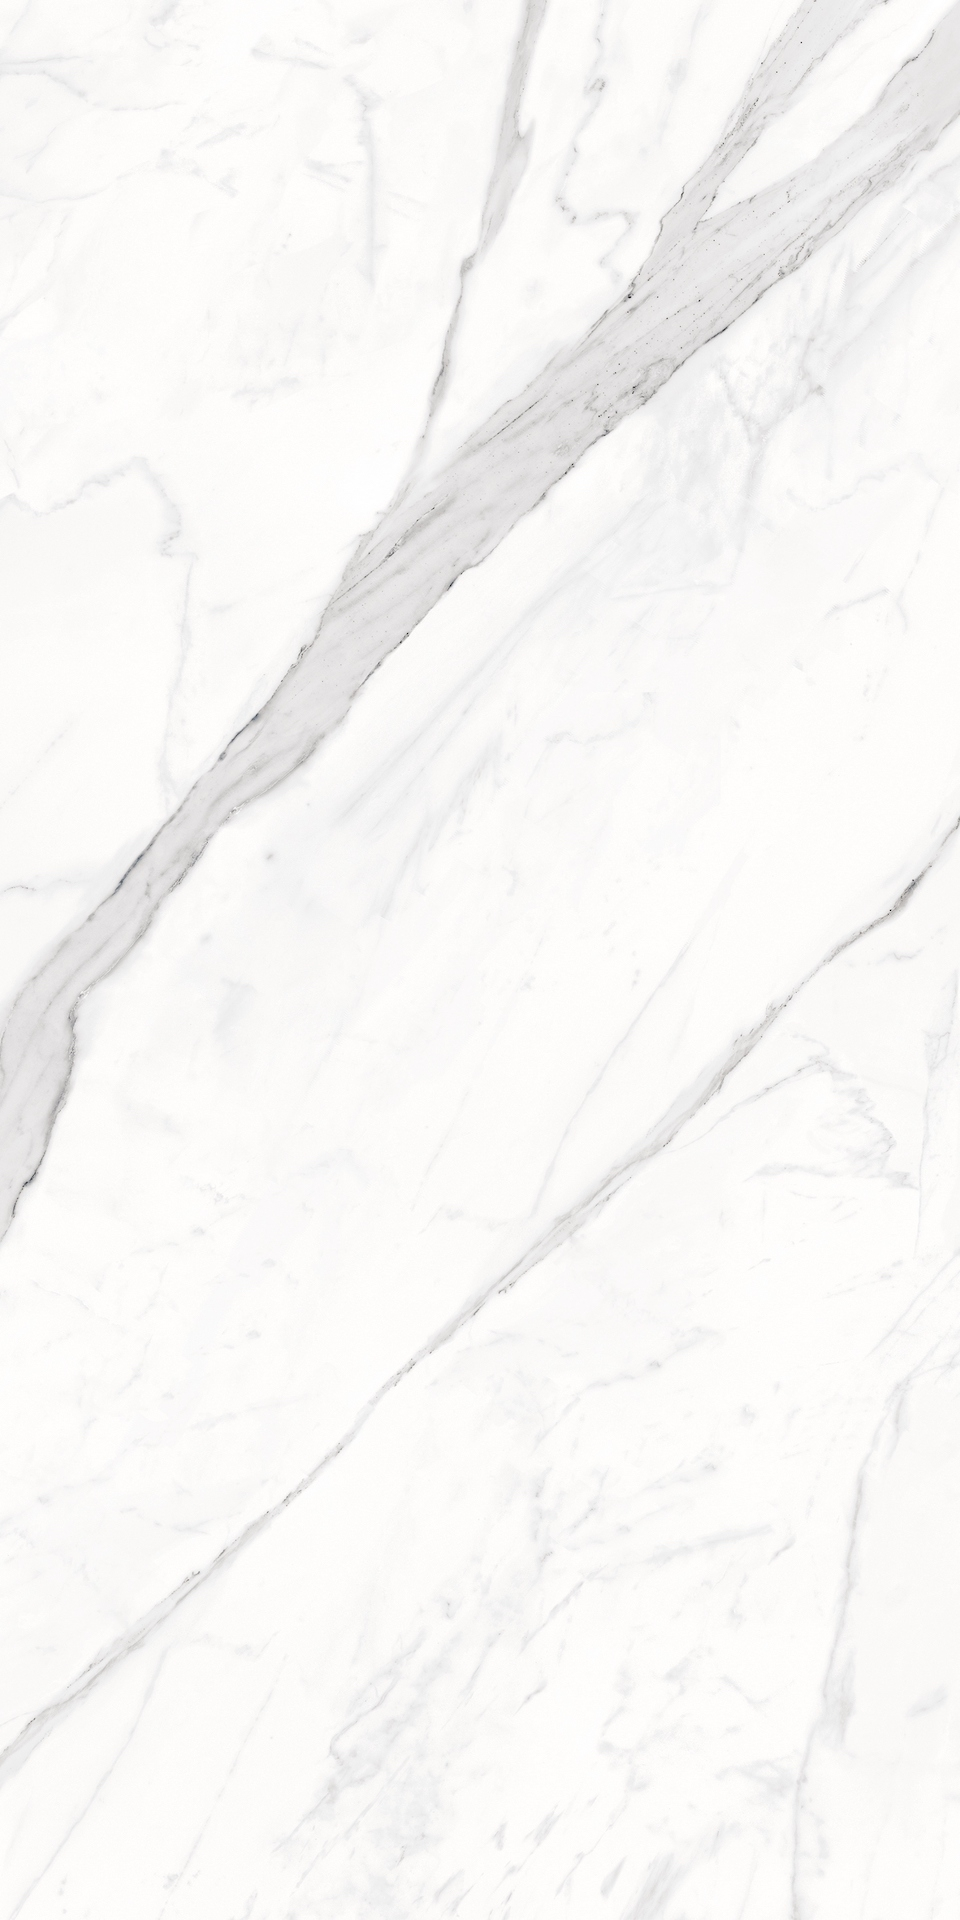 Bianco Calacatta 24x48 Polished Large Rectified Porcelain Tile